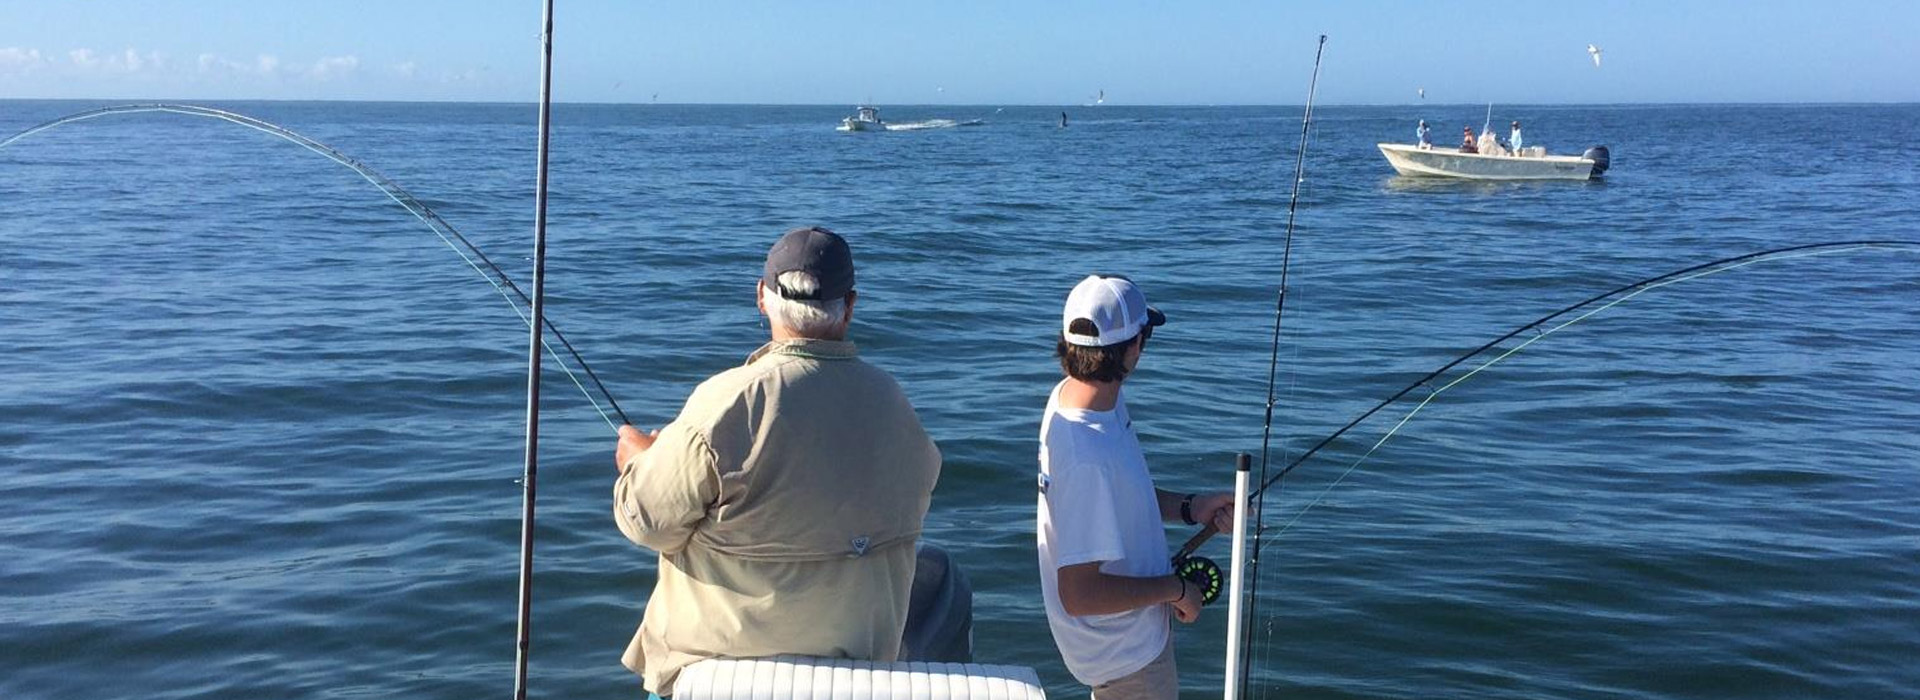 American fish game society promoting hunting fishing for Nc fish and game